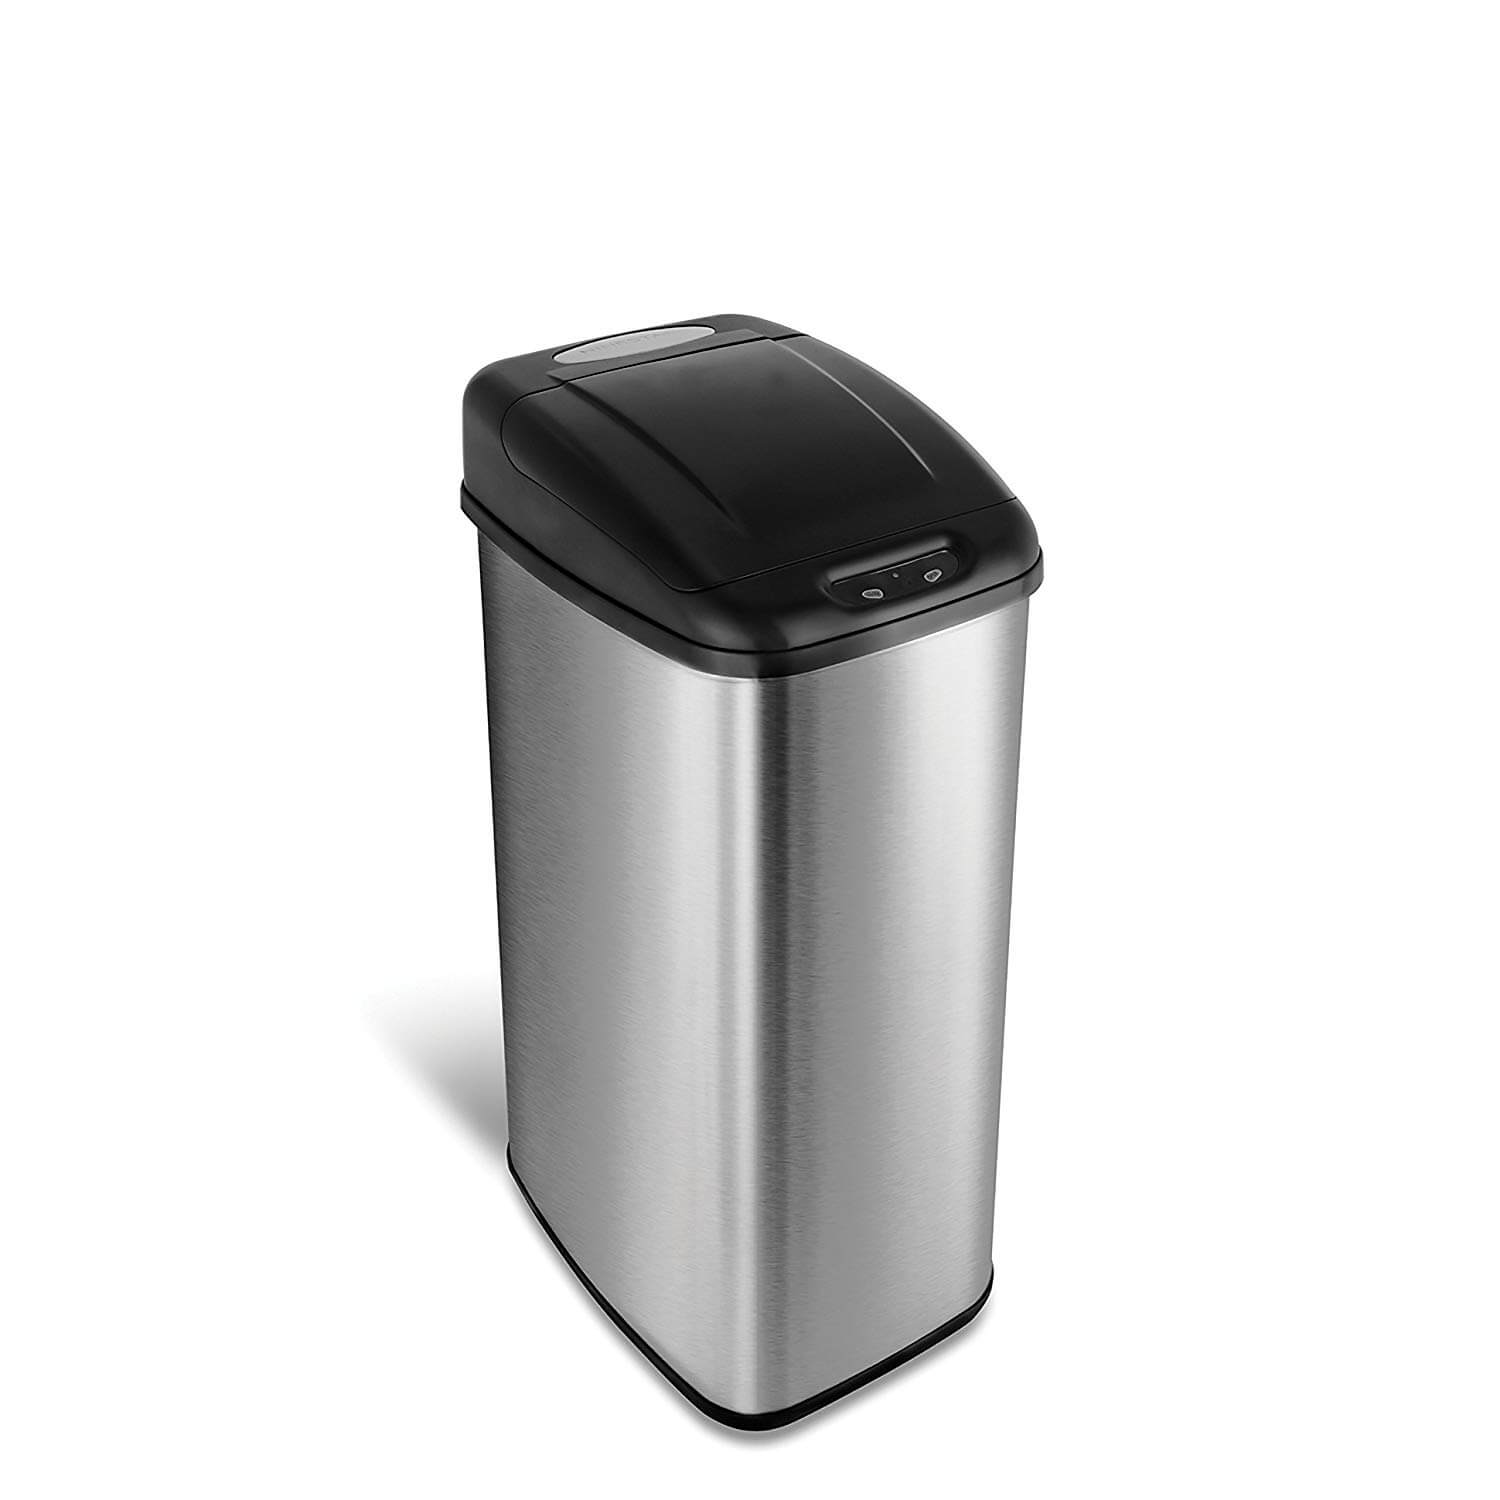 Ninestars Dzt 50 6 13 Gallon Automatic Trash Can